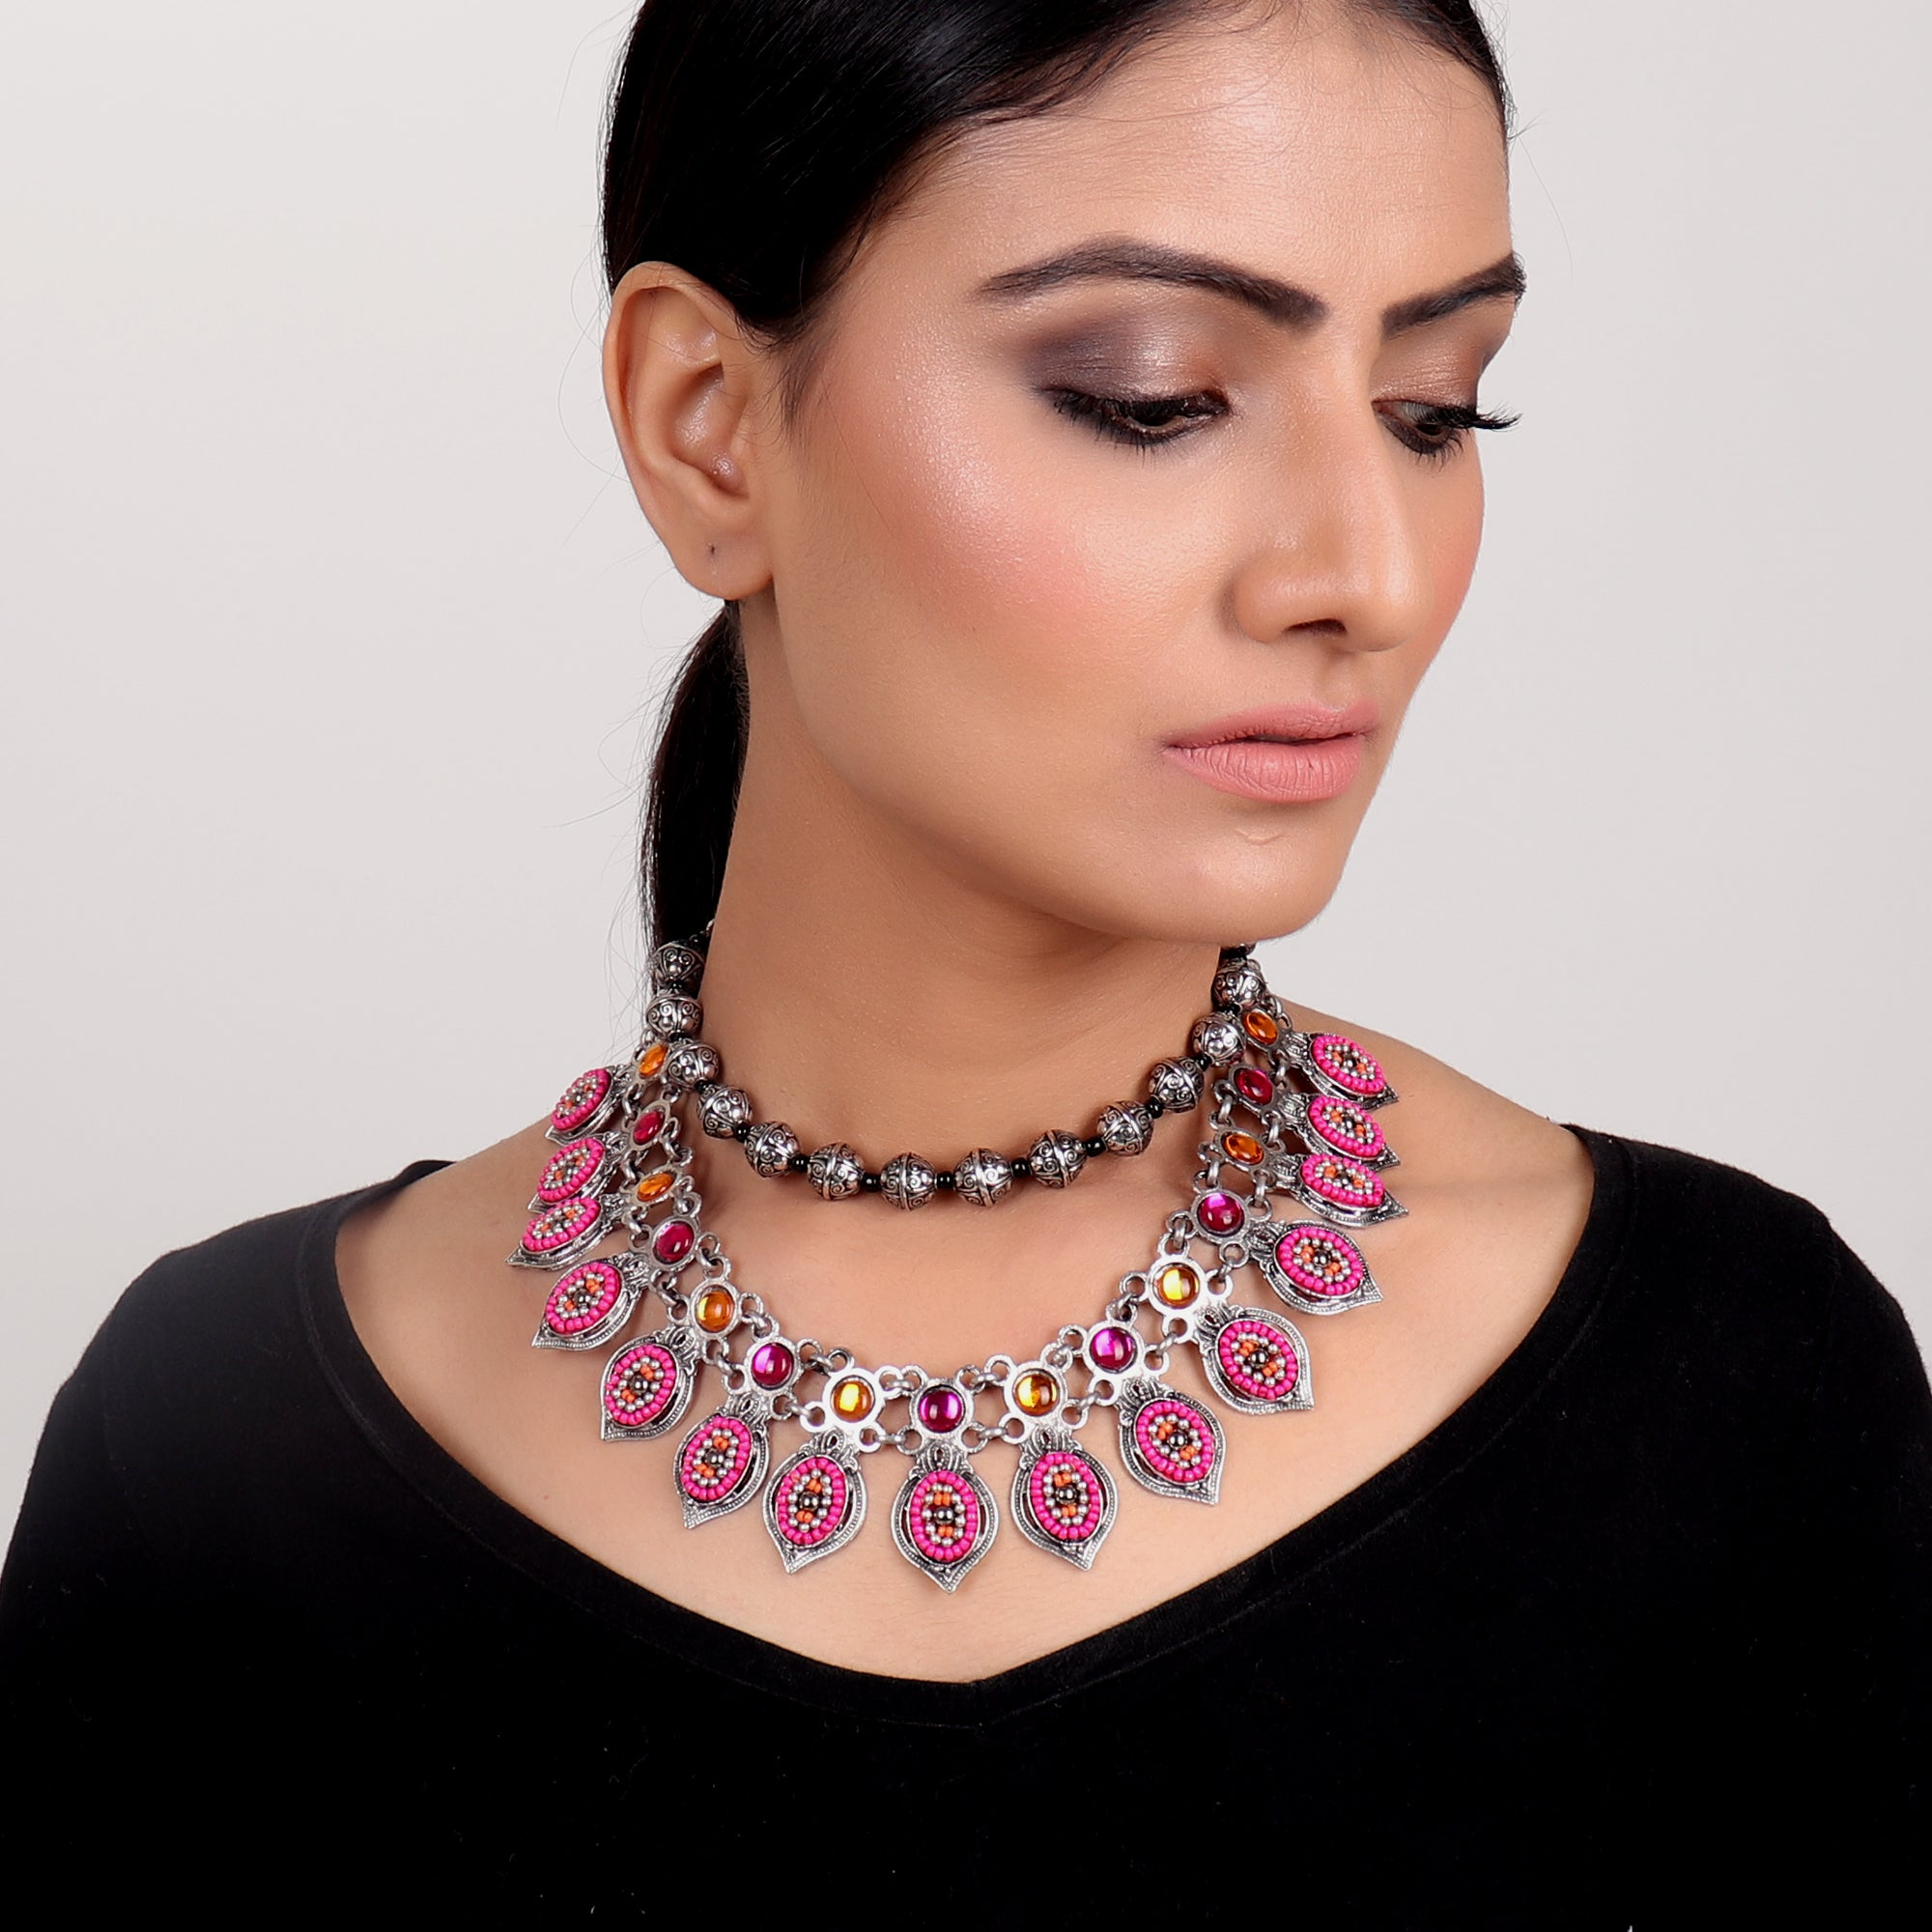 Necklace,Pink Layered Ornate Necklace - Cippele Multi Store